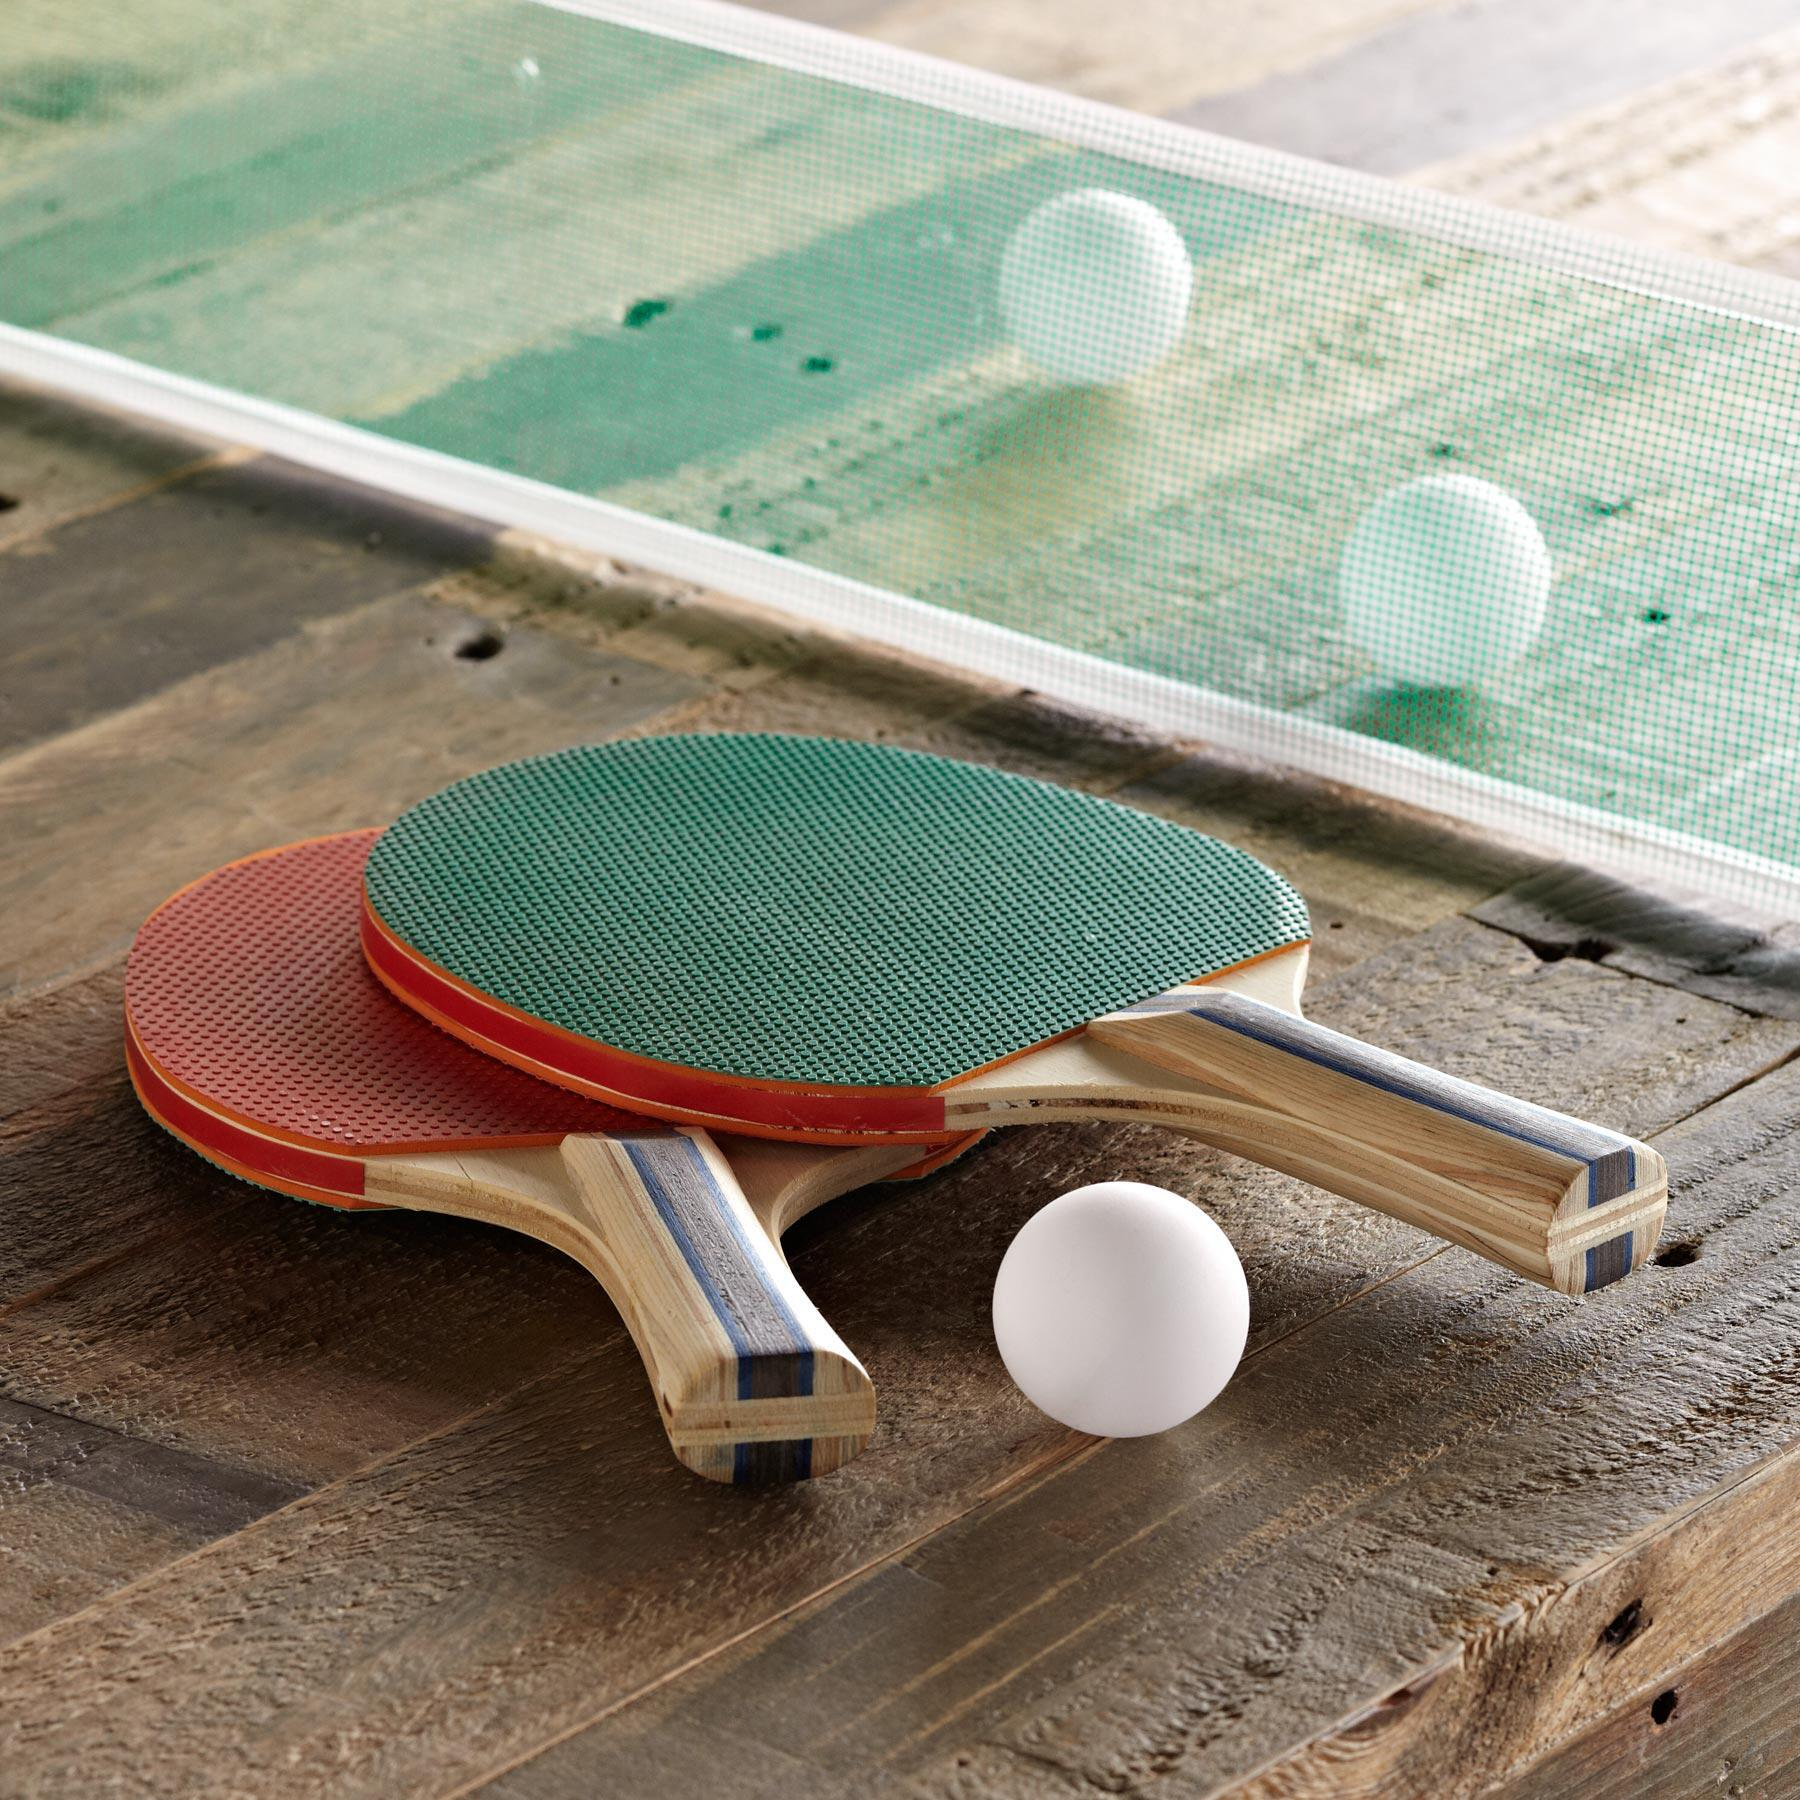 RIDLEY'S VINTAGE TABLE TENNIS SET: View 1